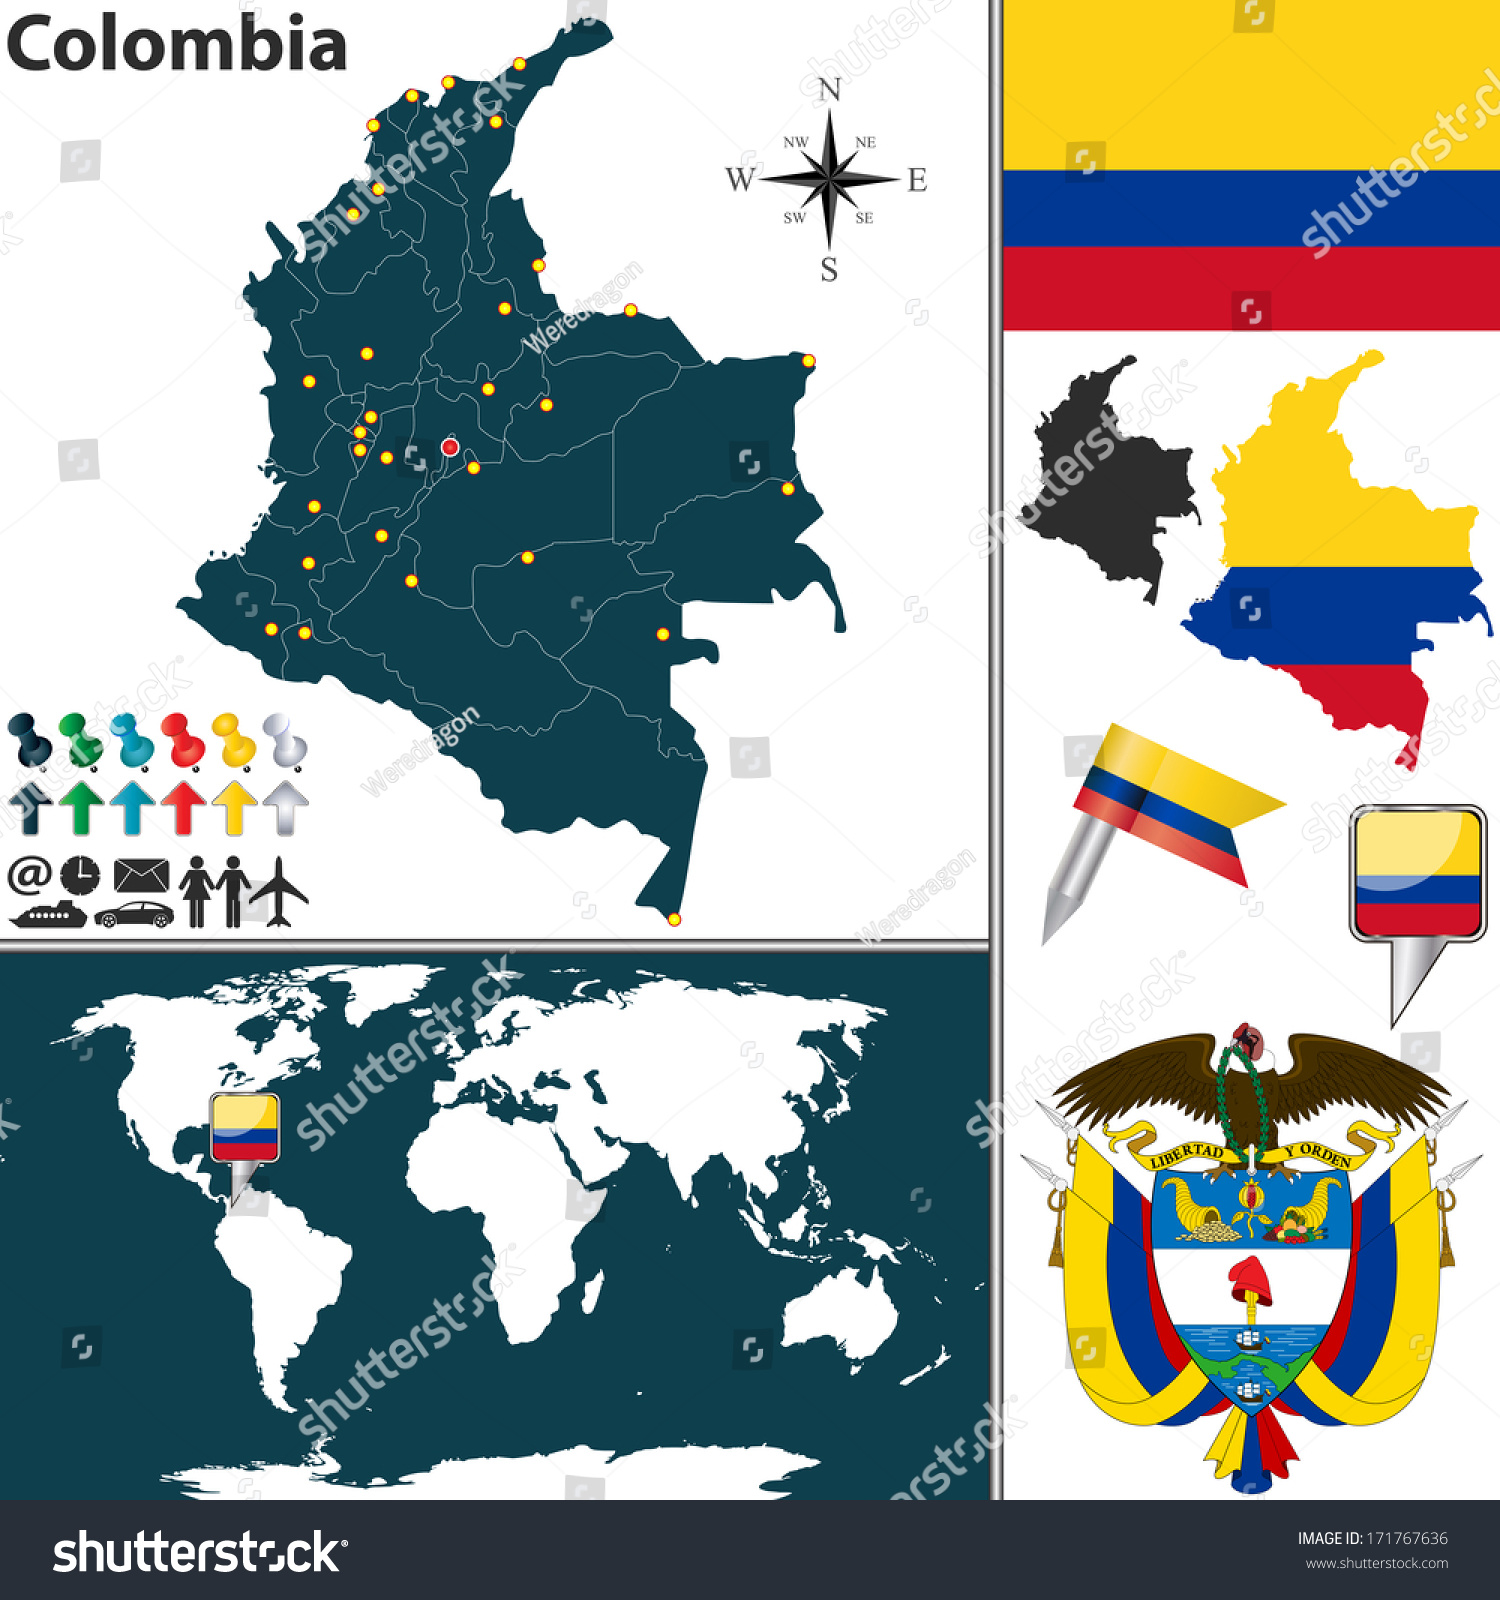 Vector map colombia regions coat arms vectores en stock 171767636 vector map colombia regions coat arms vectores en stock 171767636 shutterstock gumiabroncs Images